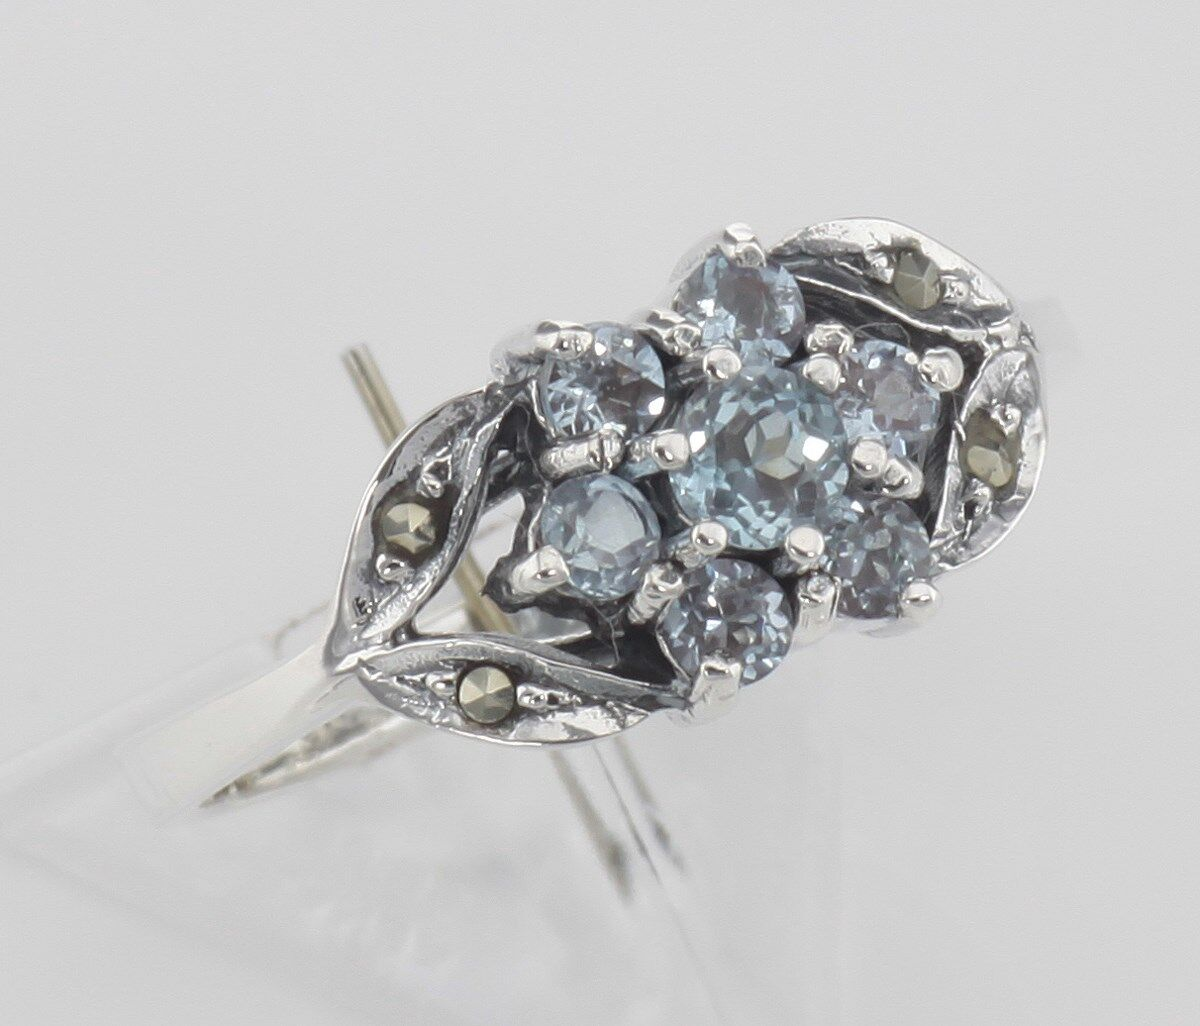 bluee Topaz Marcasite Ring Flower Design Sterling Size 7 1 4 - Free Shipping